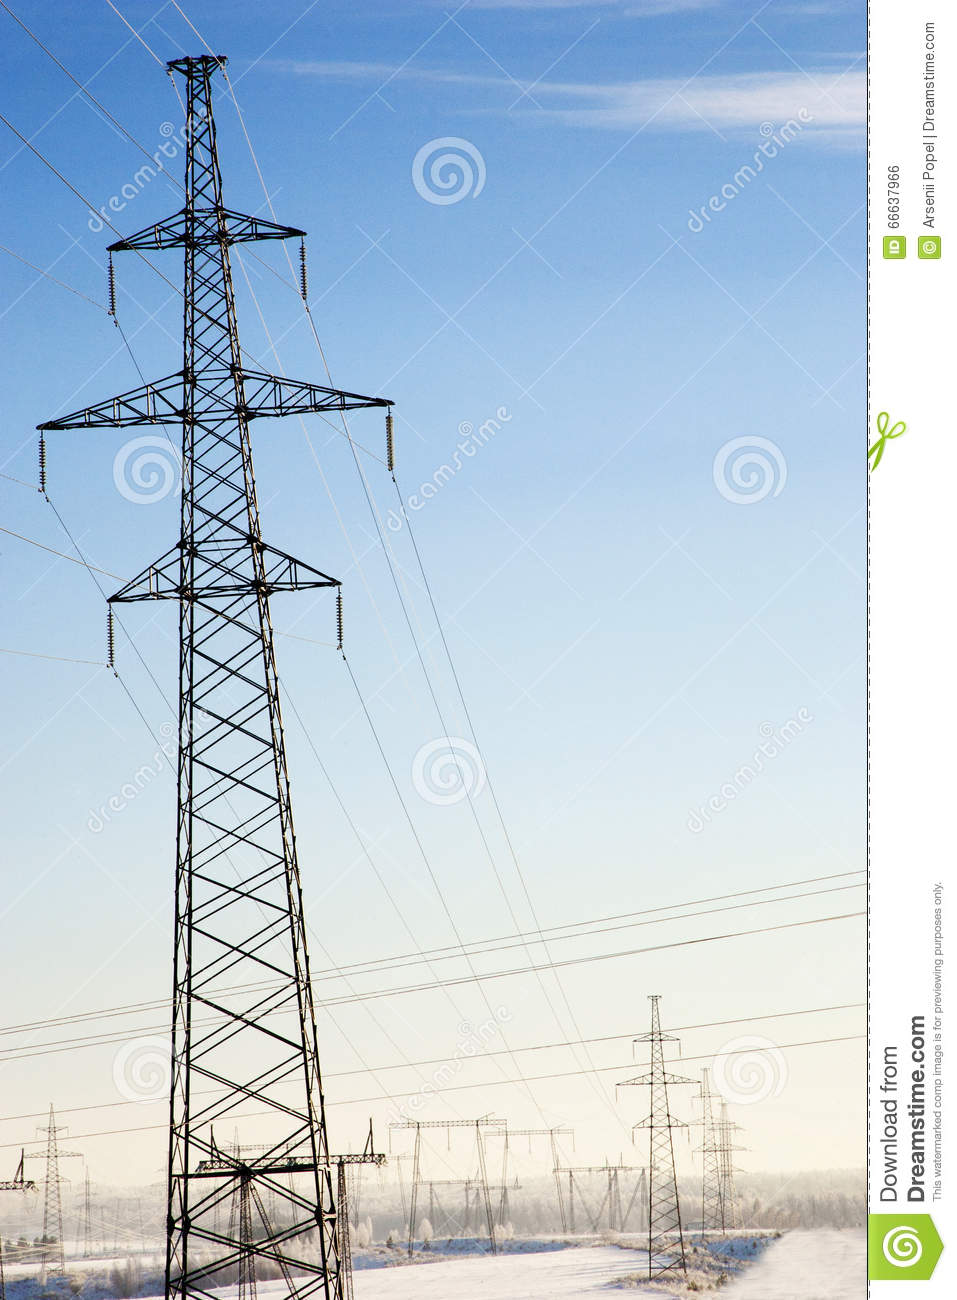 mast electrical wiring in winter landscape stock photo image, wiring, landscape electrical wiring